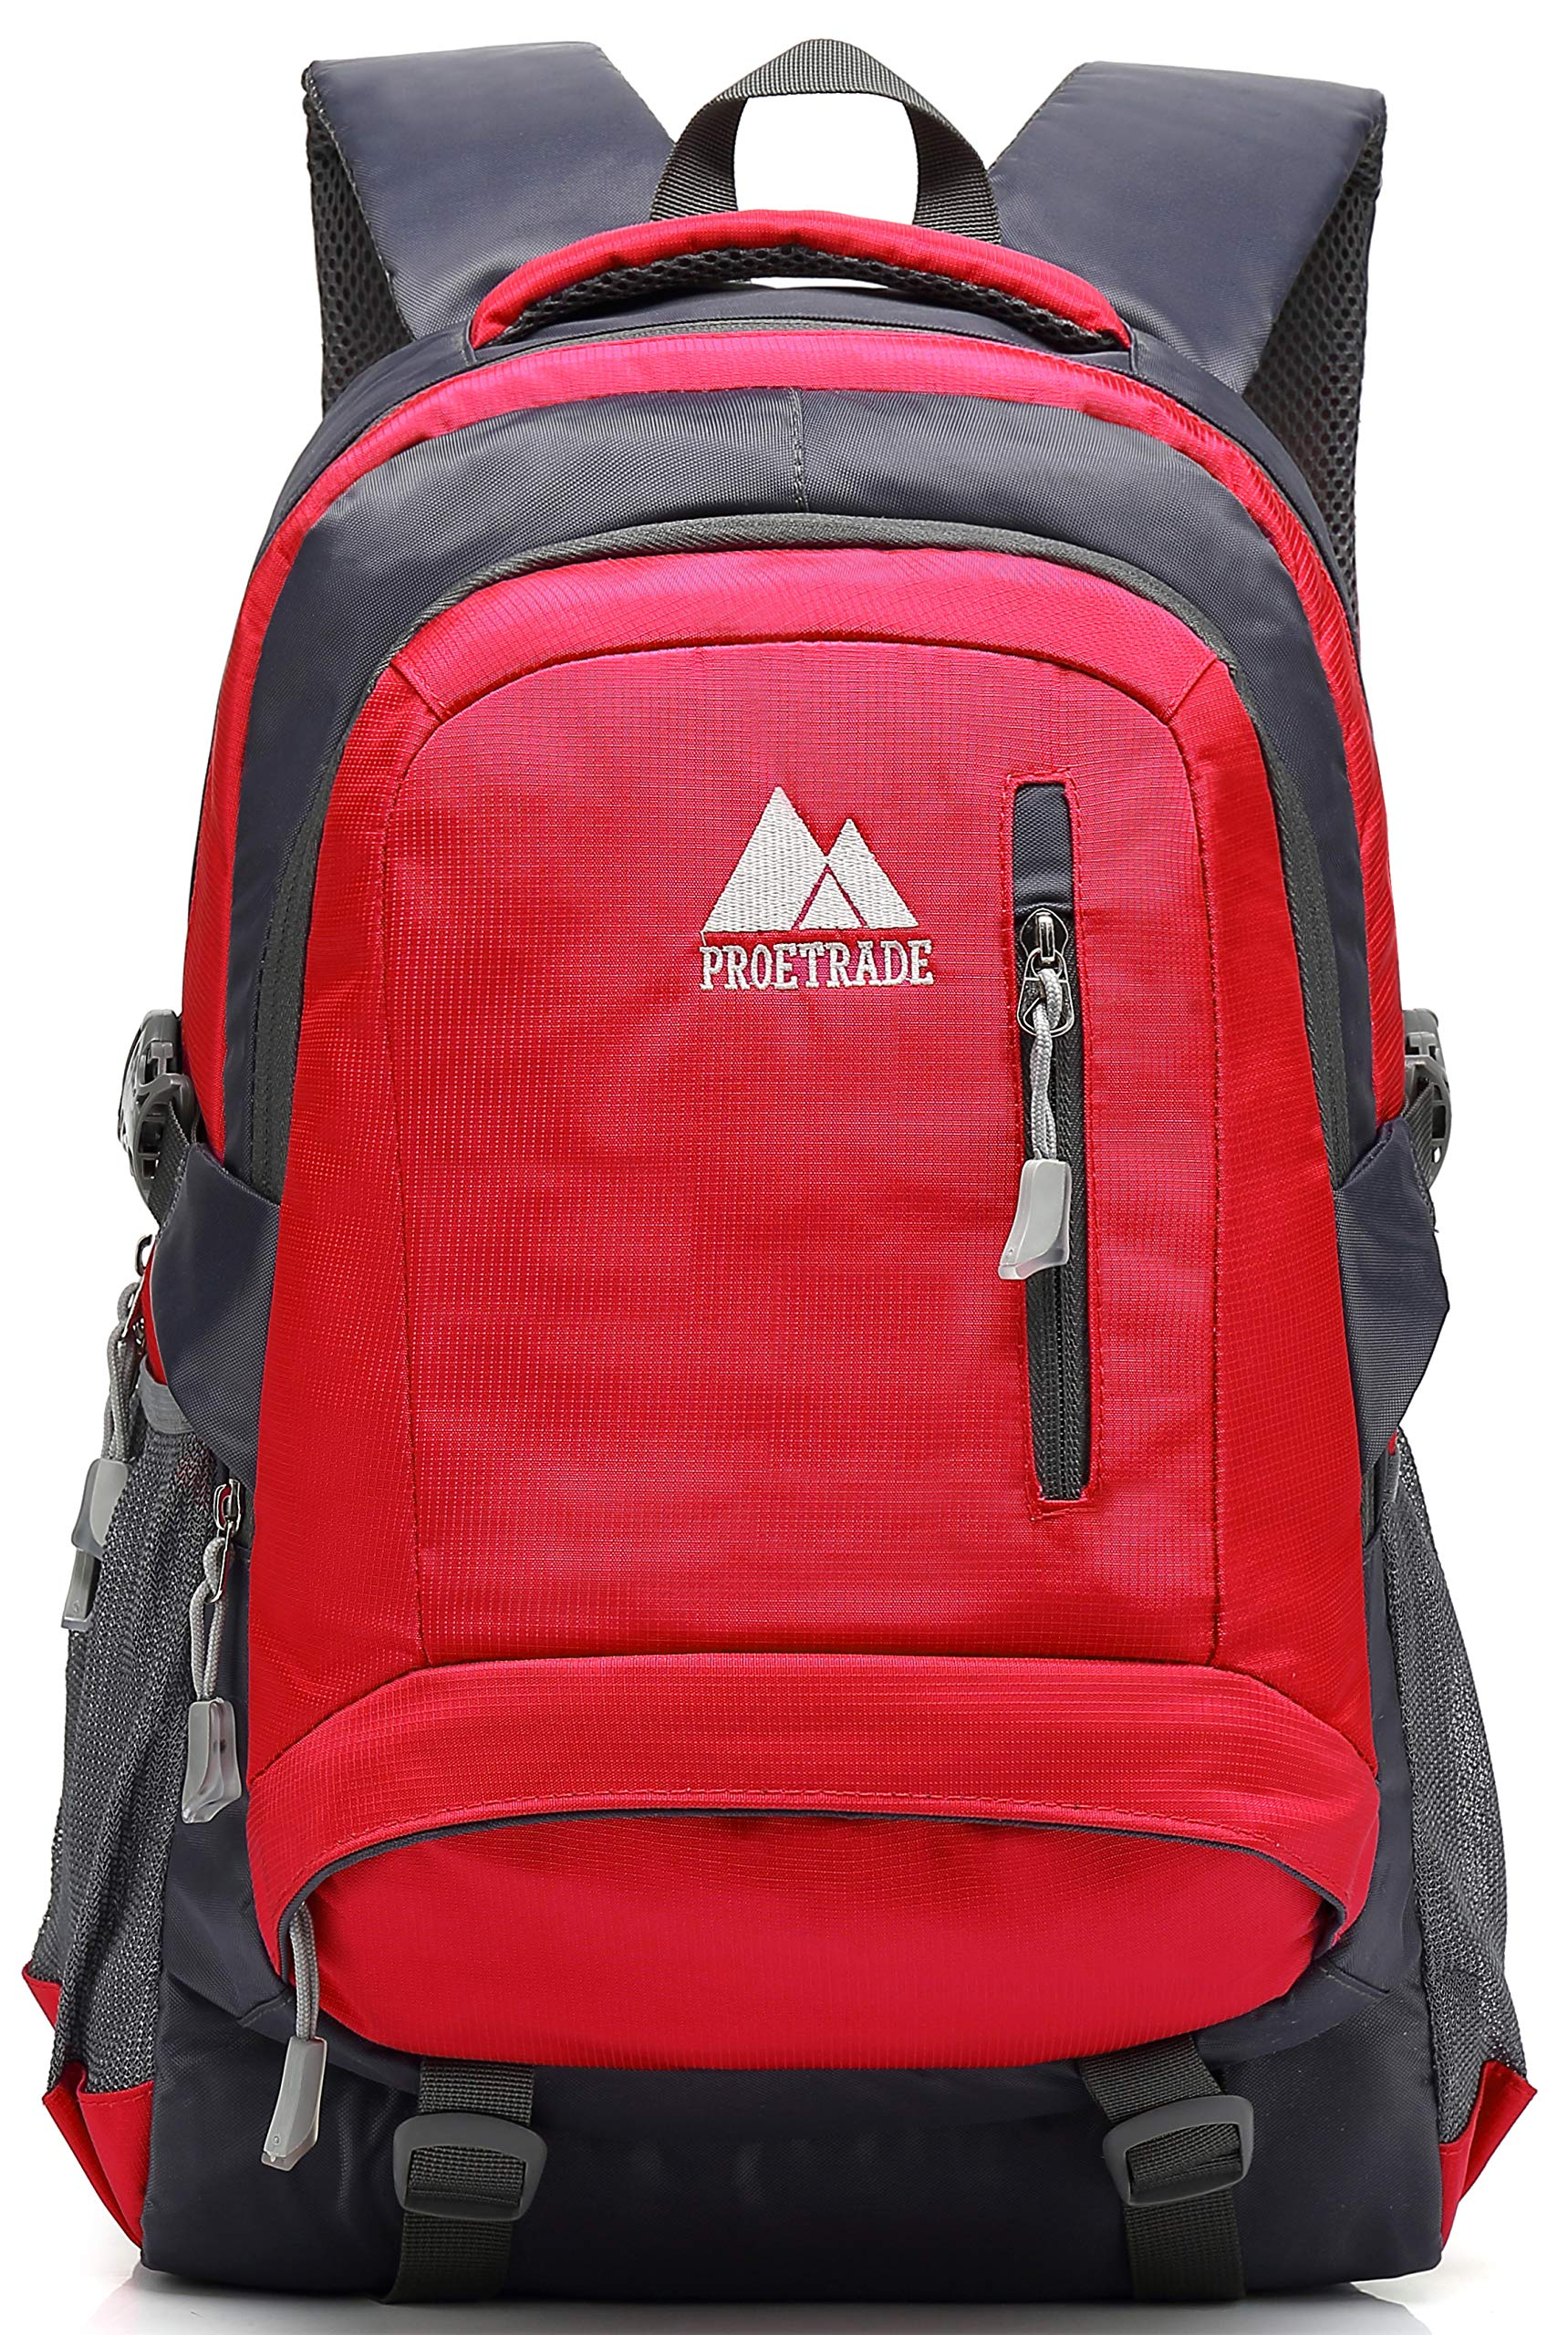 School Backpack BookBag For College Travel Hiking Fit Laptop Up to 15.6 Inch Water Resistant (Red) by ProEtrade (Image #1)